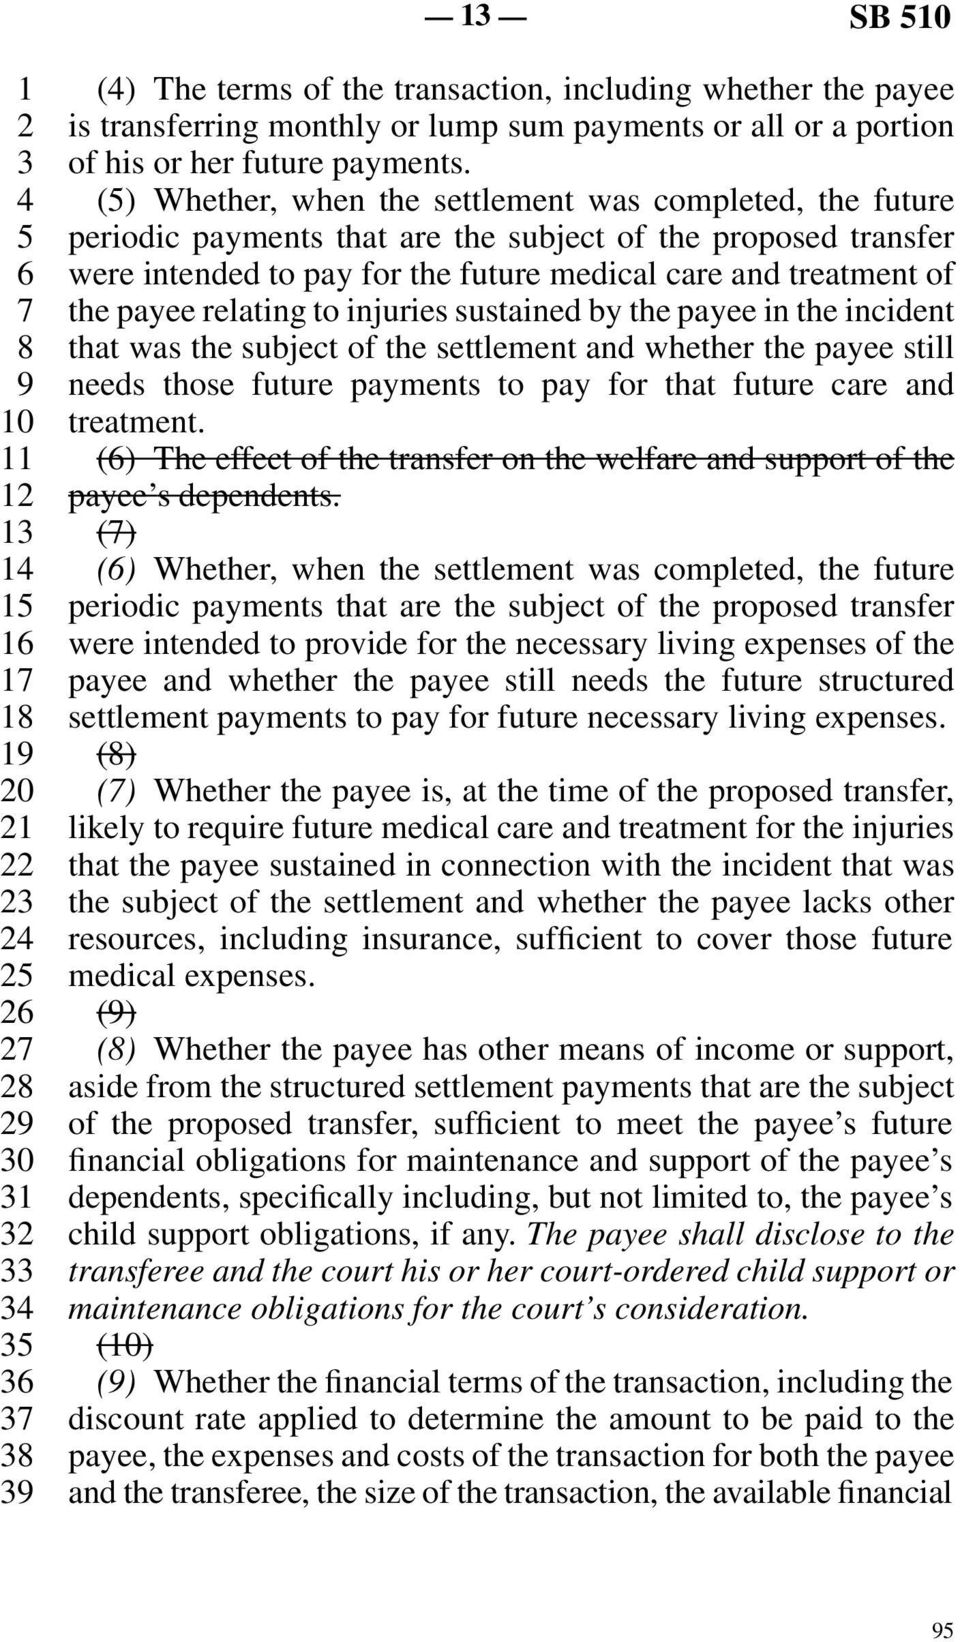 relating to injuries sustained by the payee in the incident that was the subject of the settlement and whether the payee still needs those future payments to pay for that future care and treatment.